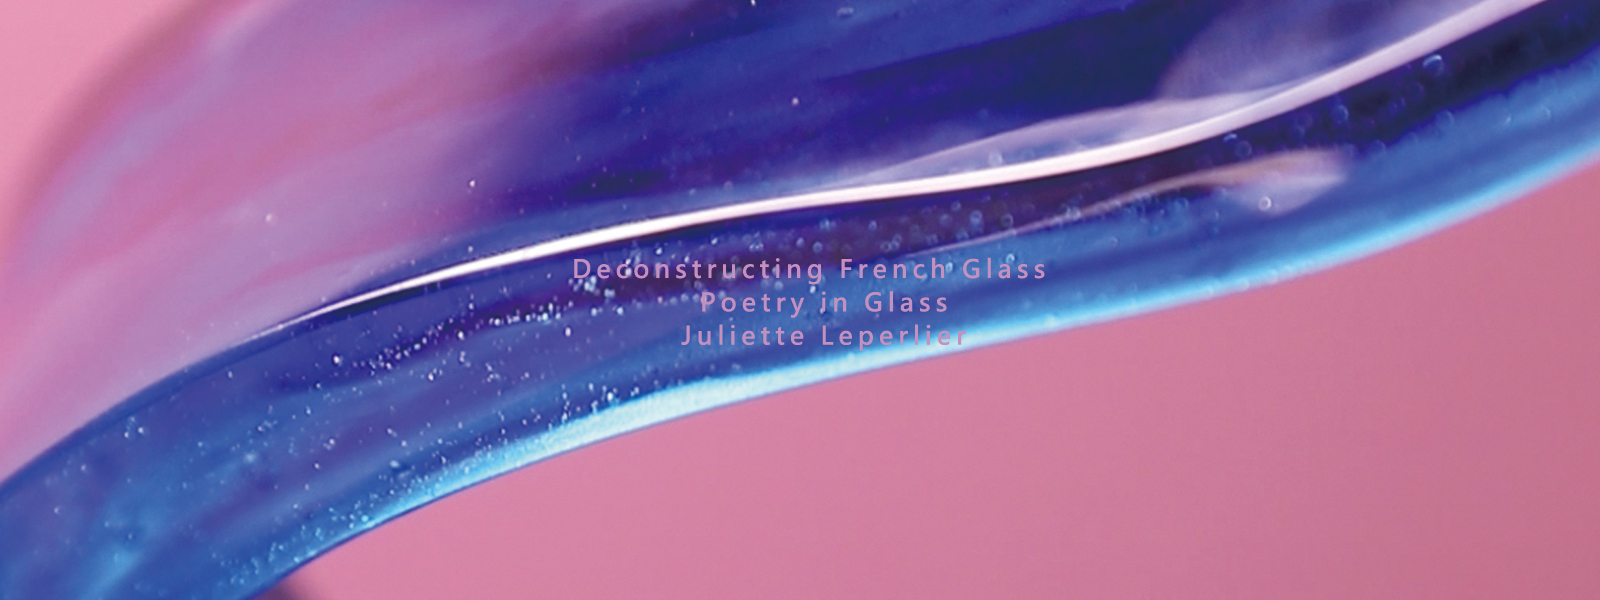 Deconstructing French Glass